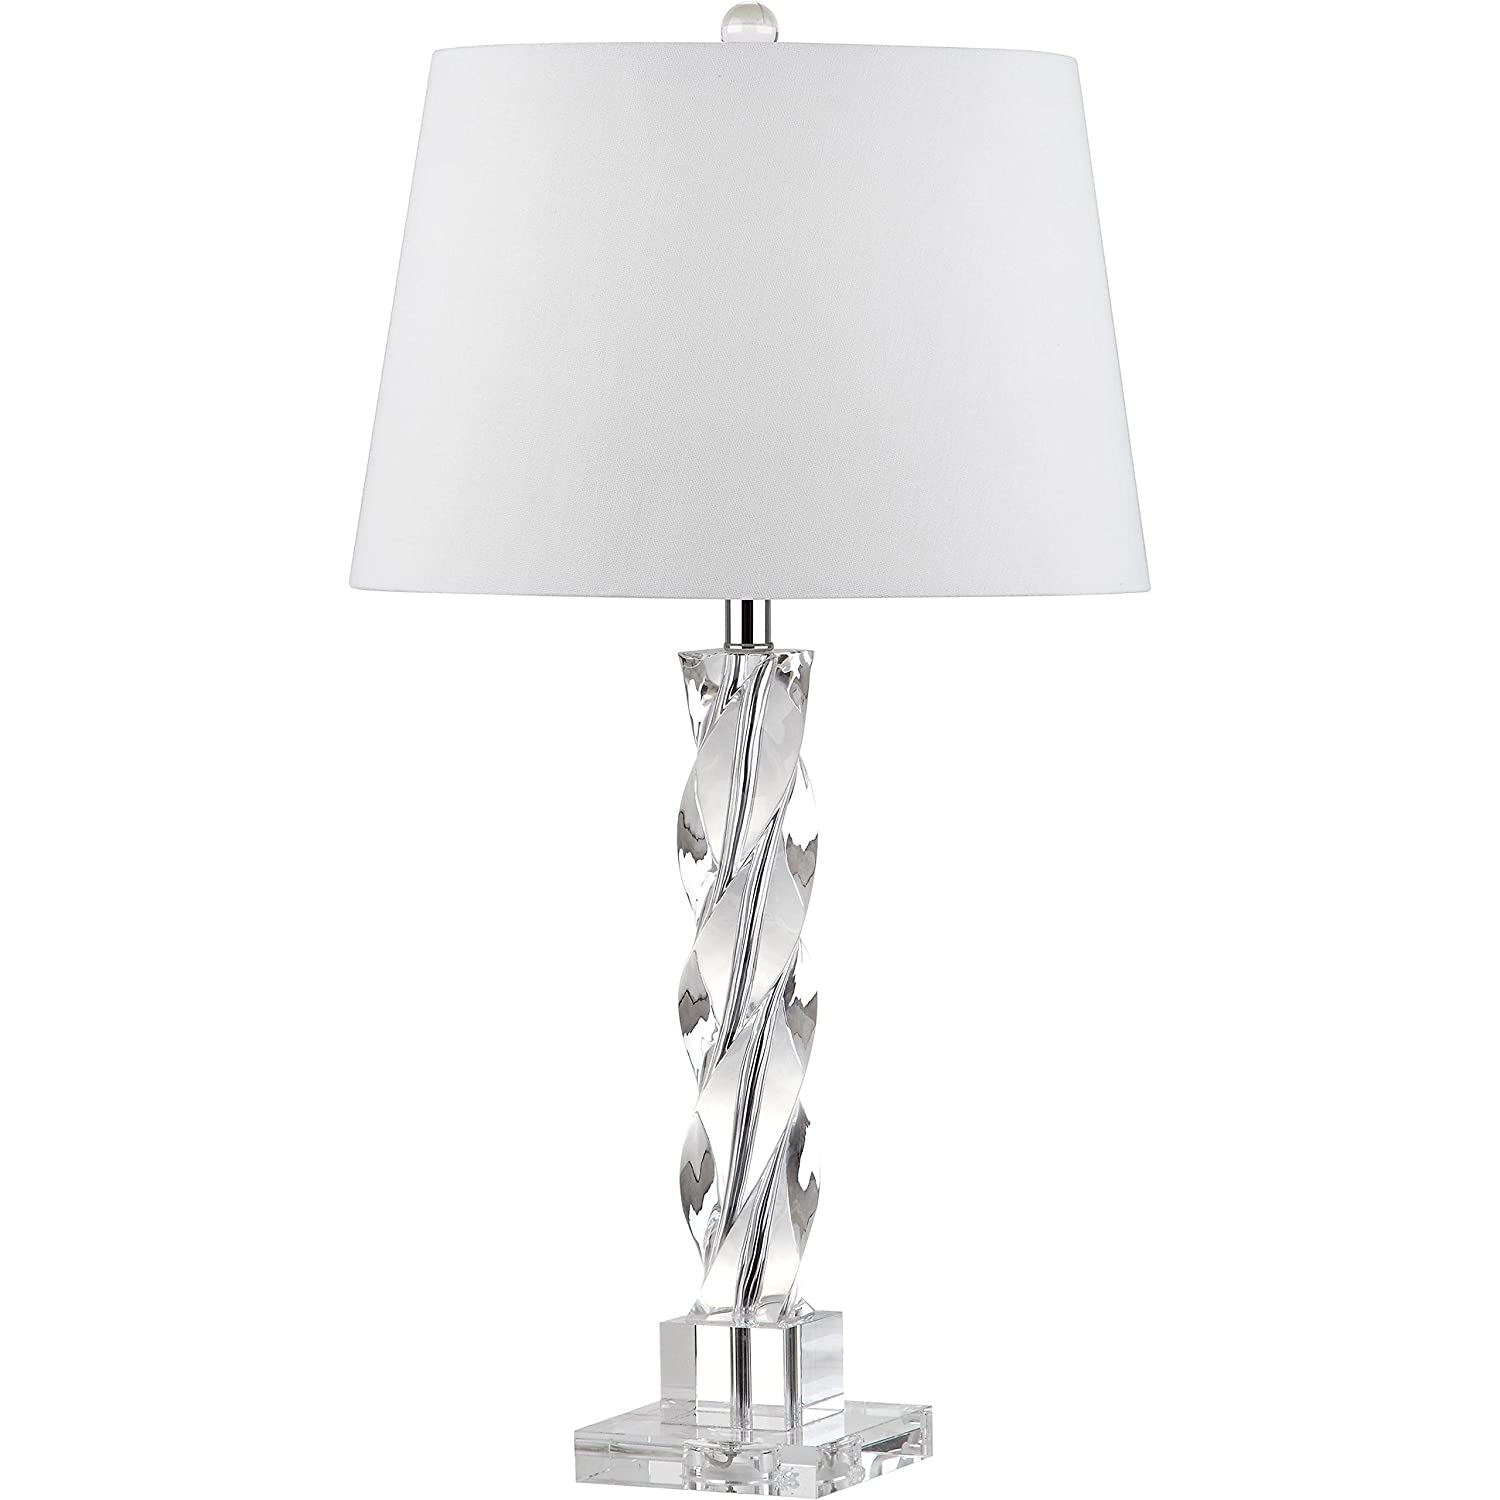 Amazon.com: Safavieh Lighting Collection Ice Palace 27.5 Inch Table Lamp:  Home U0026 Kitchen